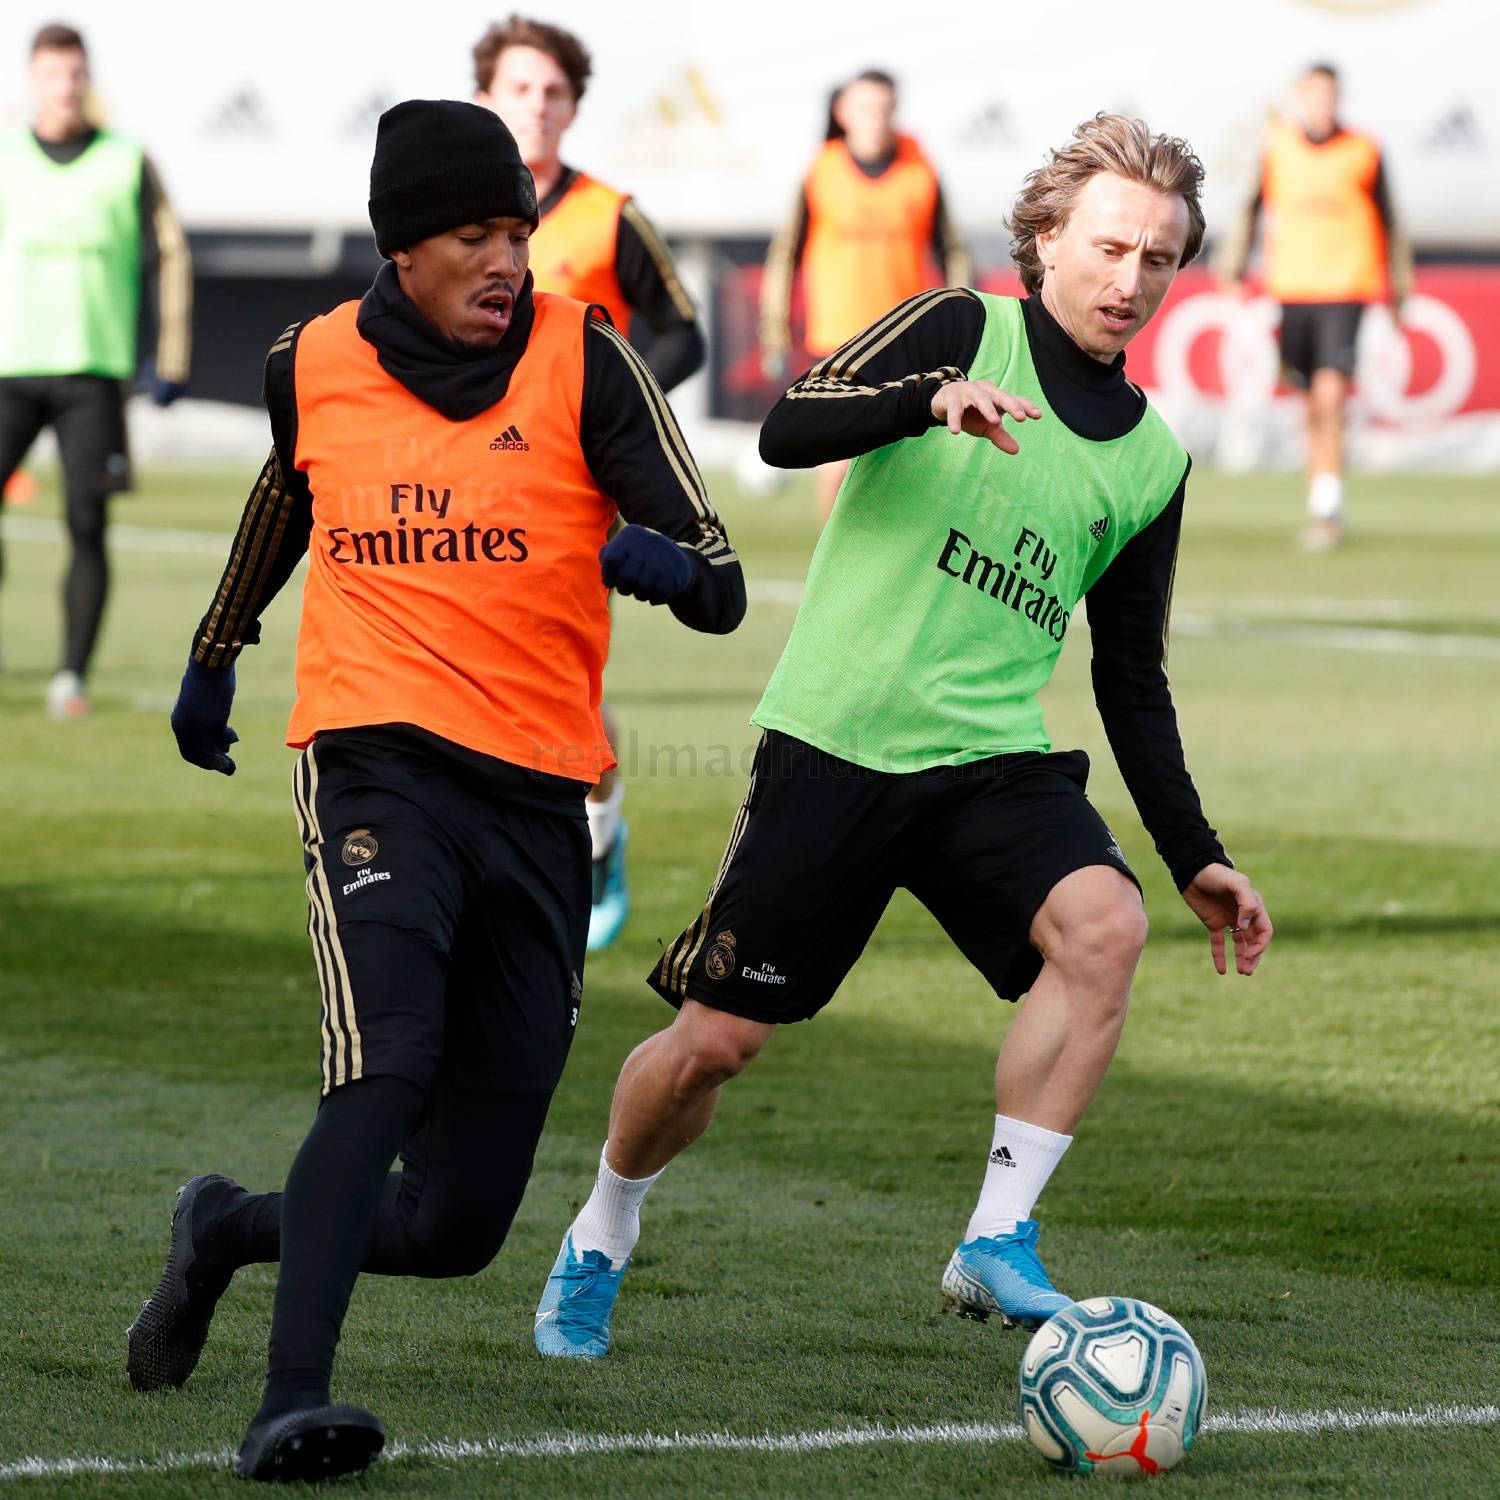 Real Madrid - Entrenamiento del Real Madrid  - 27-11-2019